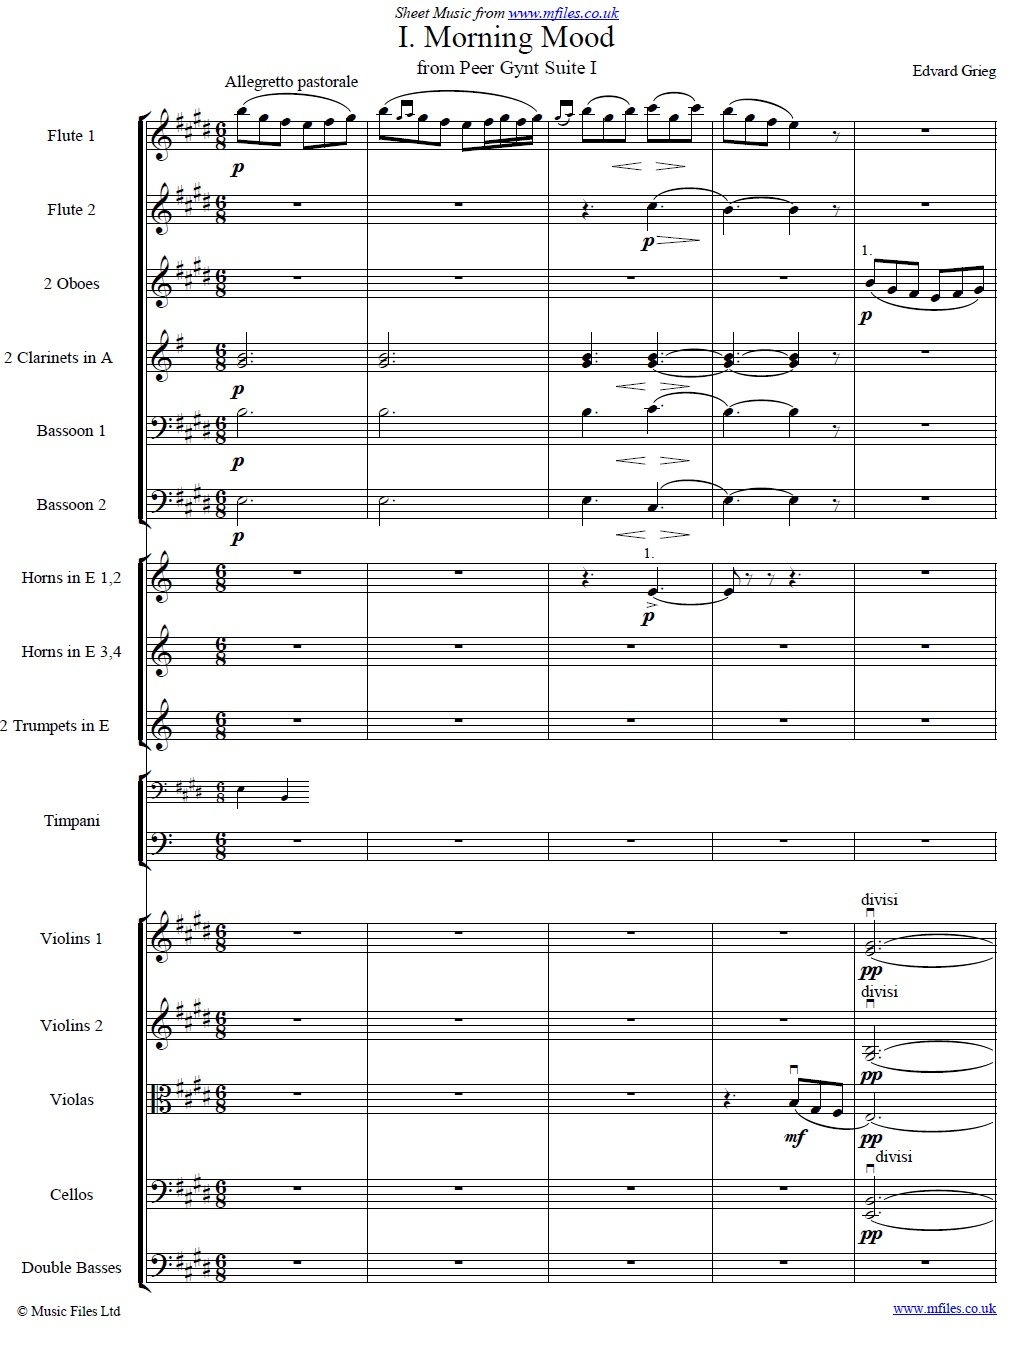 Grieg's Morning Mood from Peer Gynt (orchestral score) - sheet music 1st page